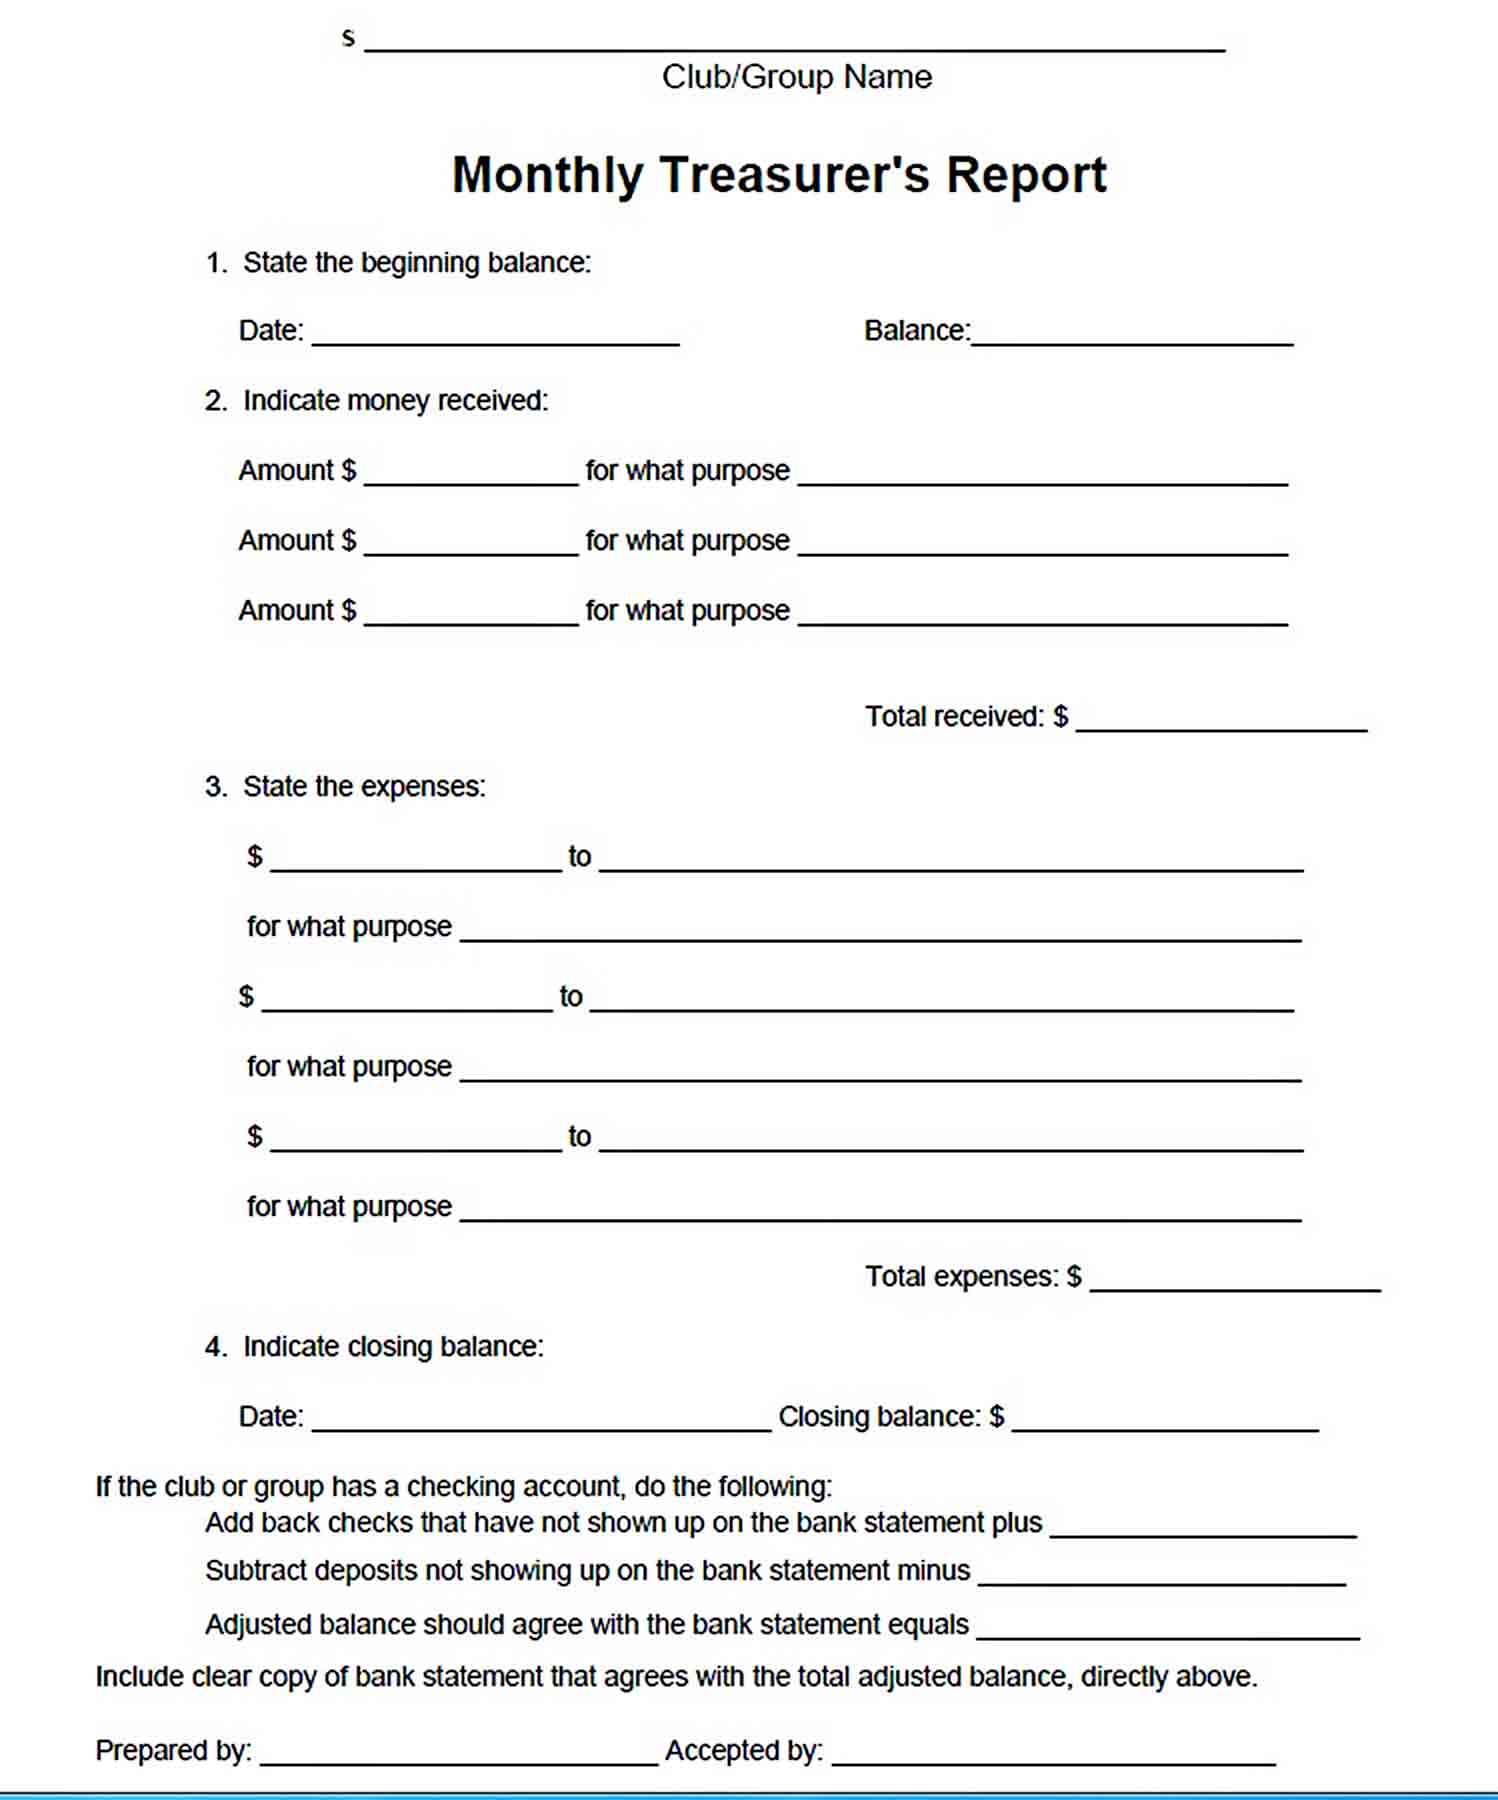 Templates Clubs Monthly Treasurers Report